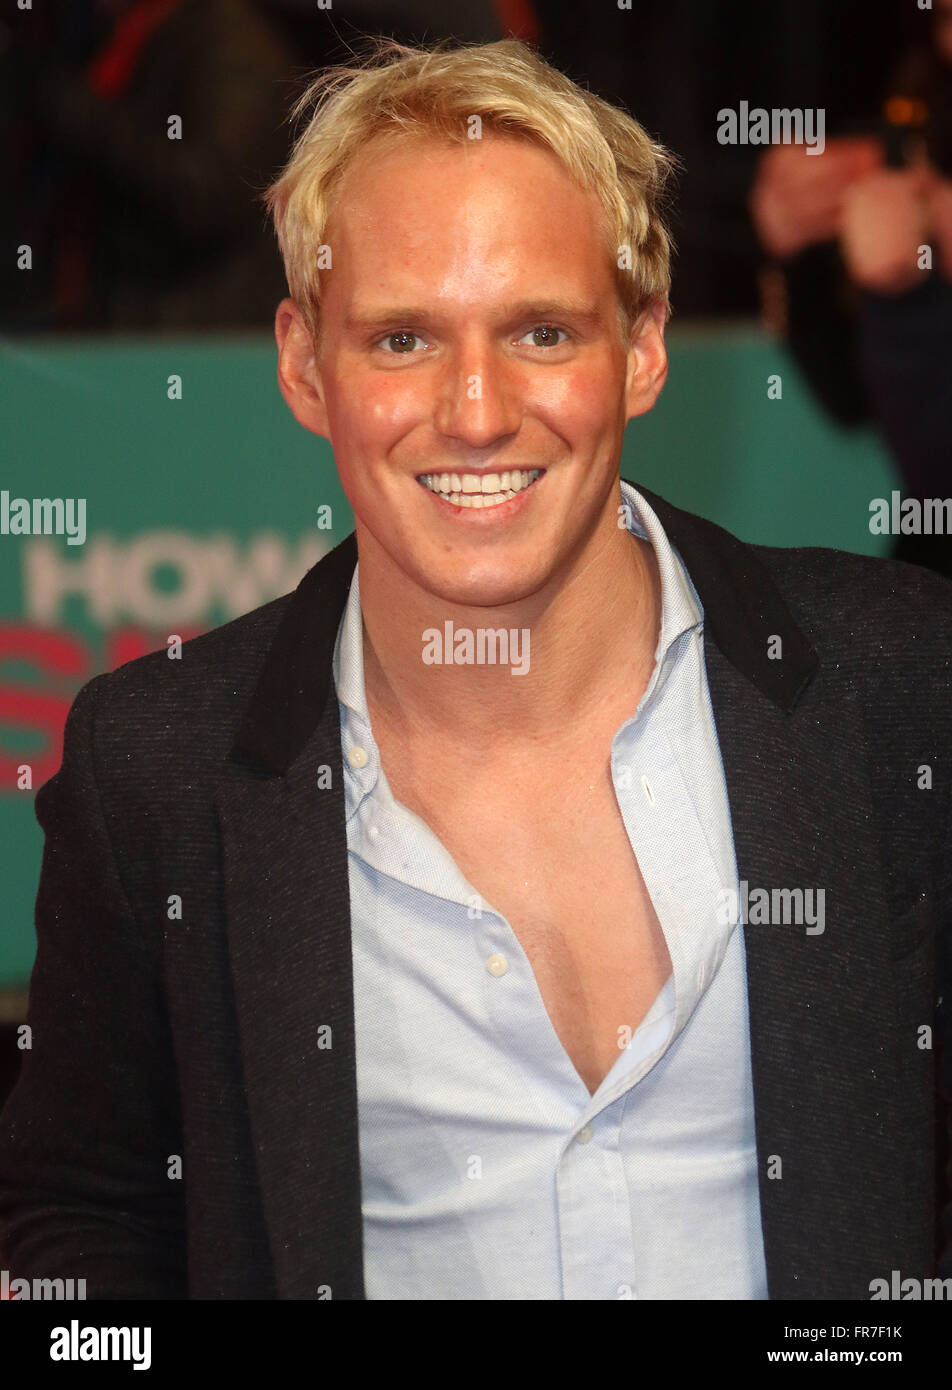 February 9, 2016 - Jamie Laing attending 'How To Be Single' European Premiere at Vue West End Cinema, Leicester - Stock Image